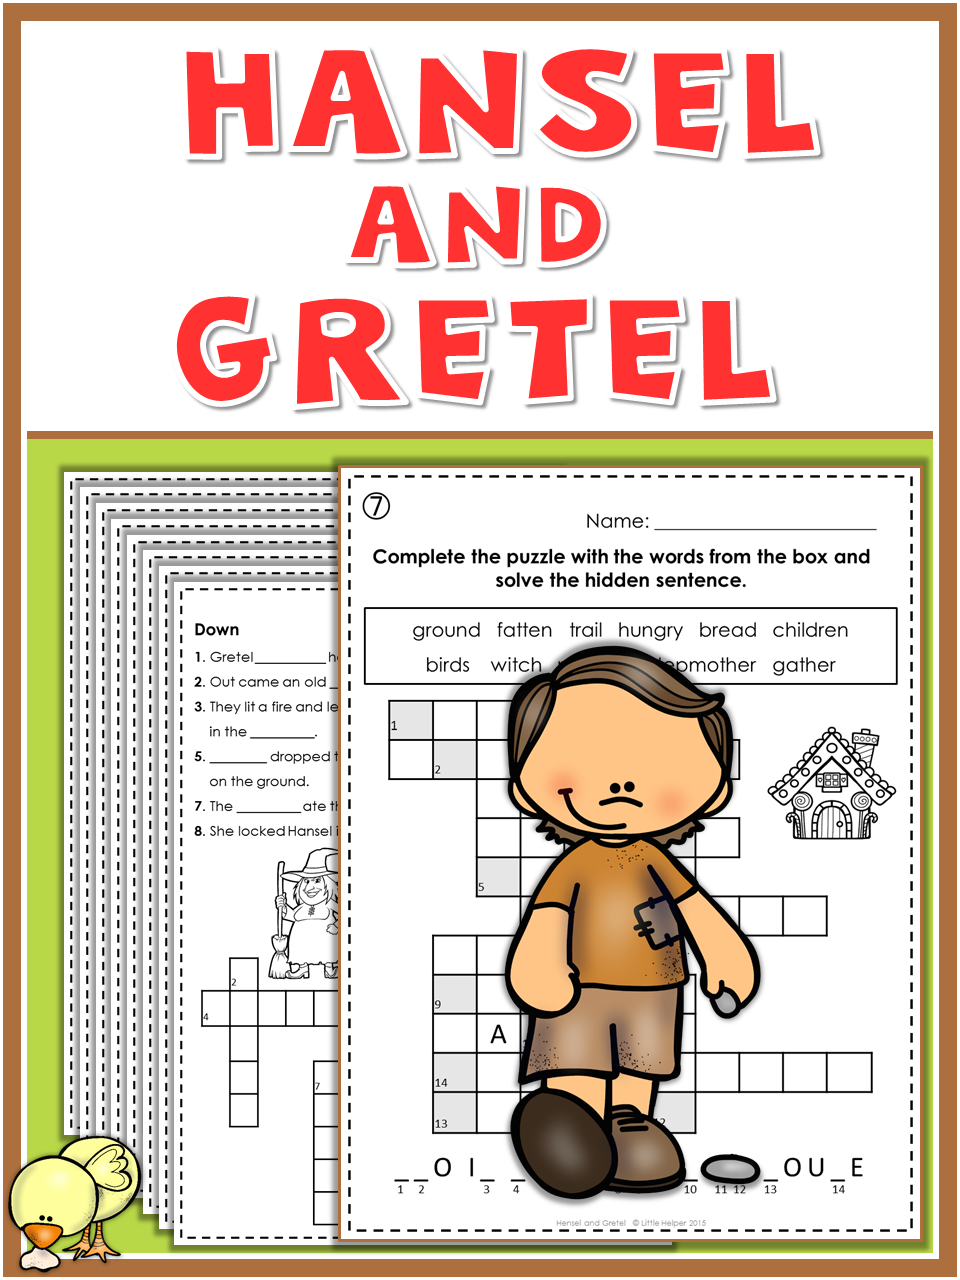 Hansel And Gretel Puzzle Fun First Grade Writing Vocabulary Practice Book Activities